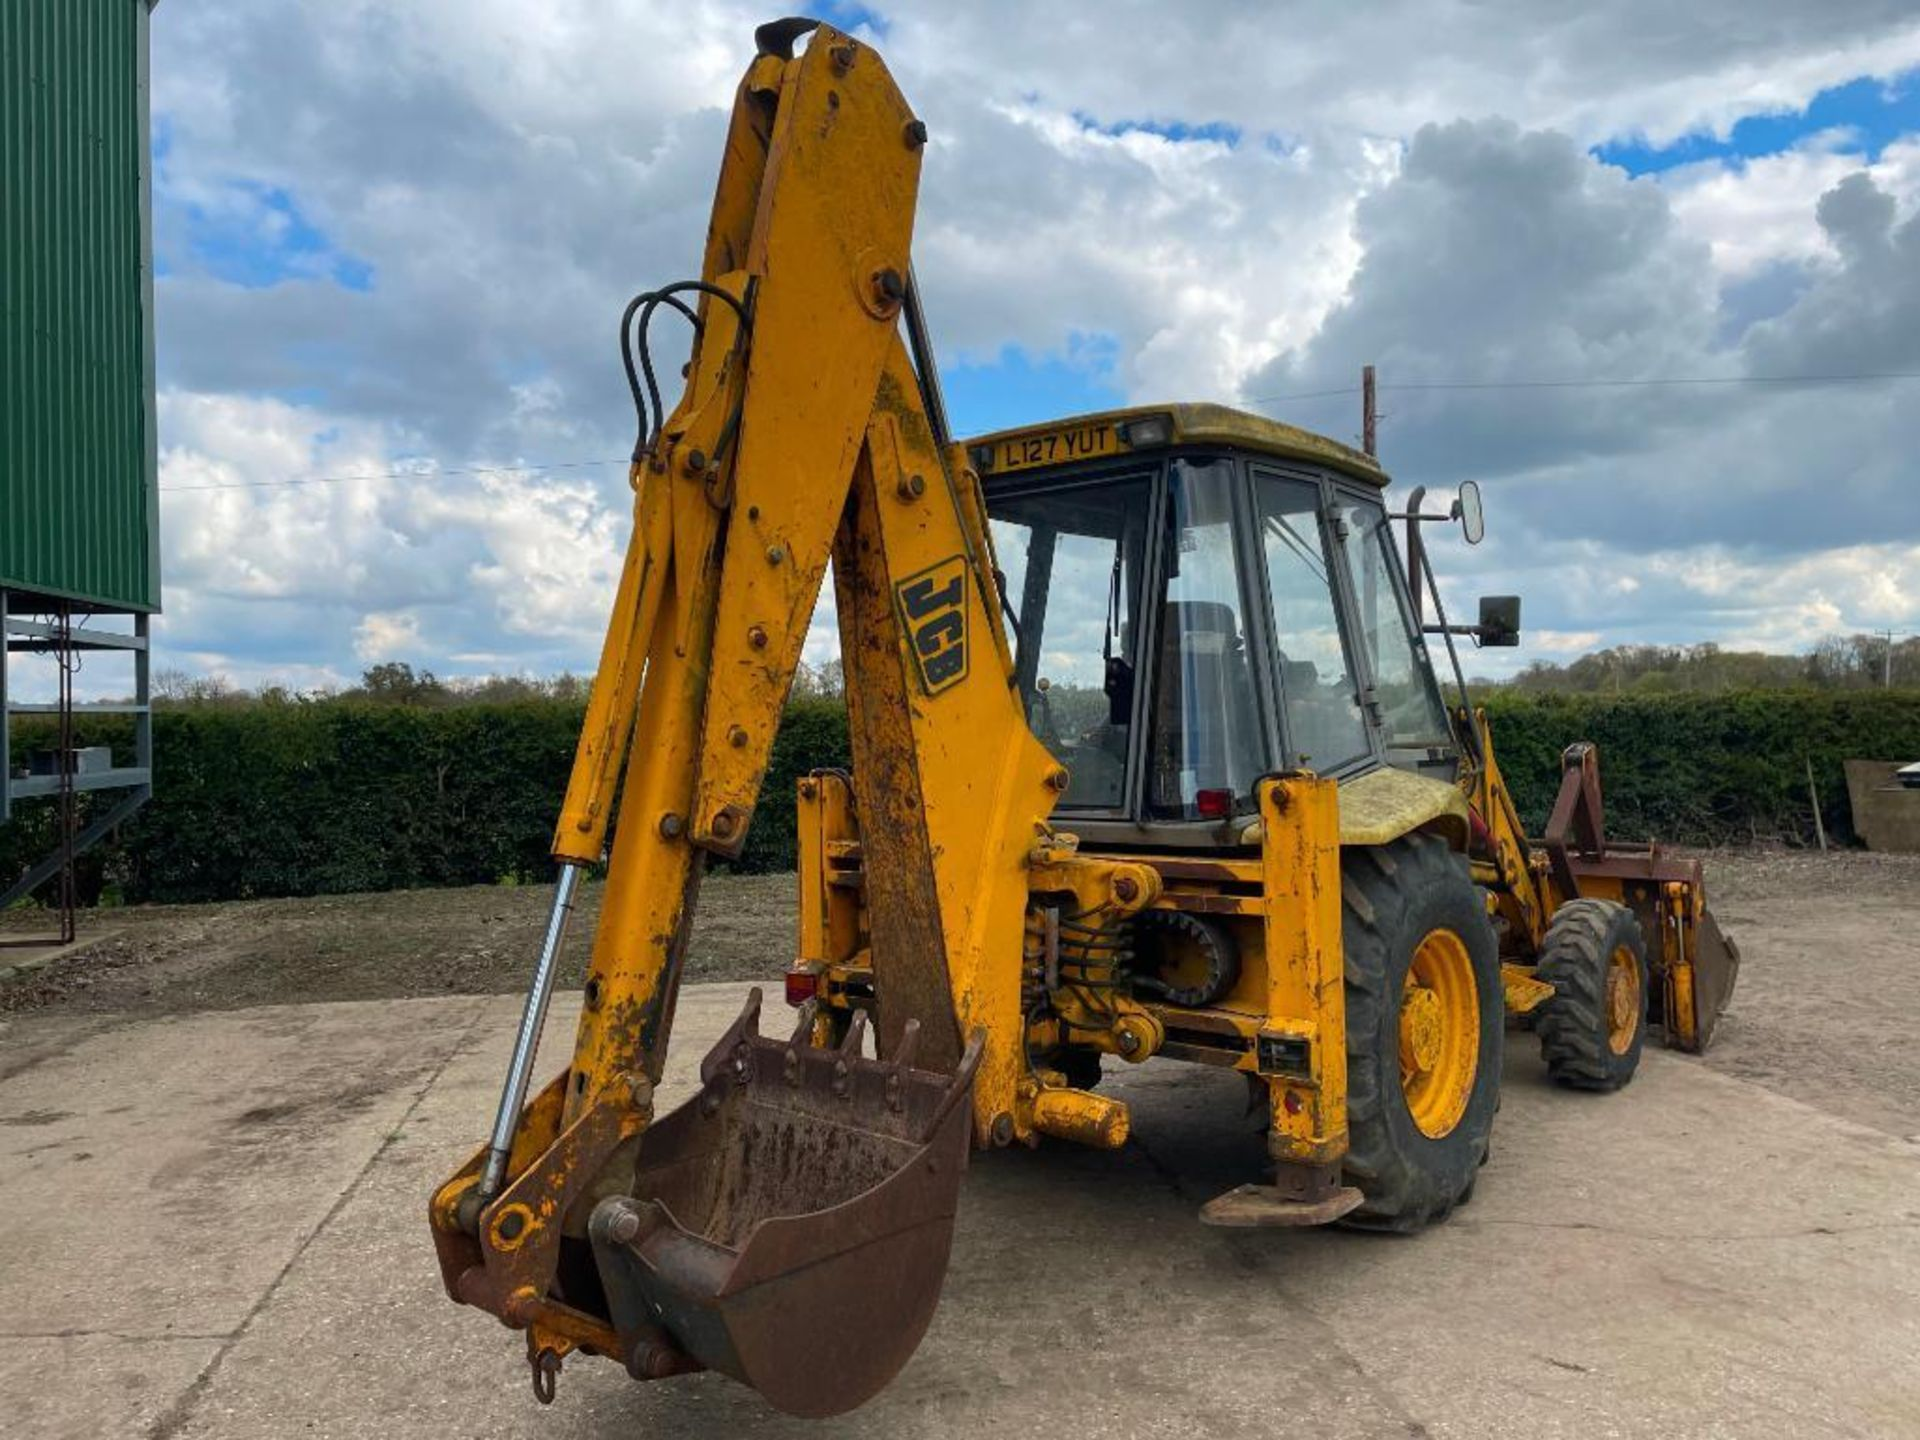 1993 JCB 3CX Sitemaster 4wd back hoe loader with 3 in 1 bucket on 10.5/80-18 front and 18.4-26 rear - Image 7 of 14